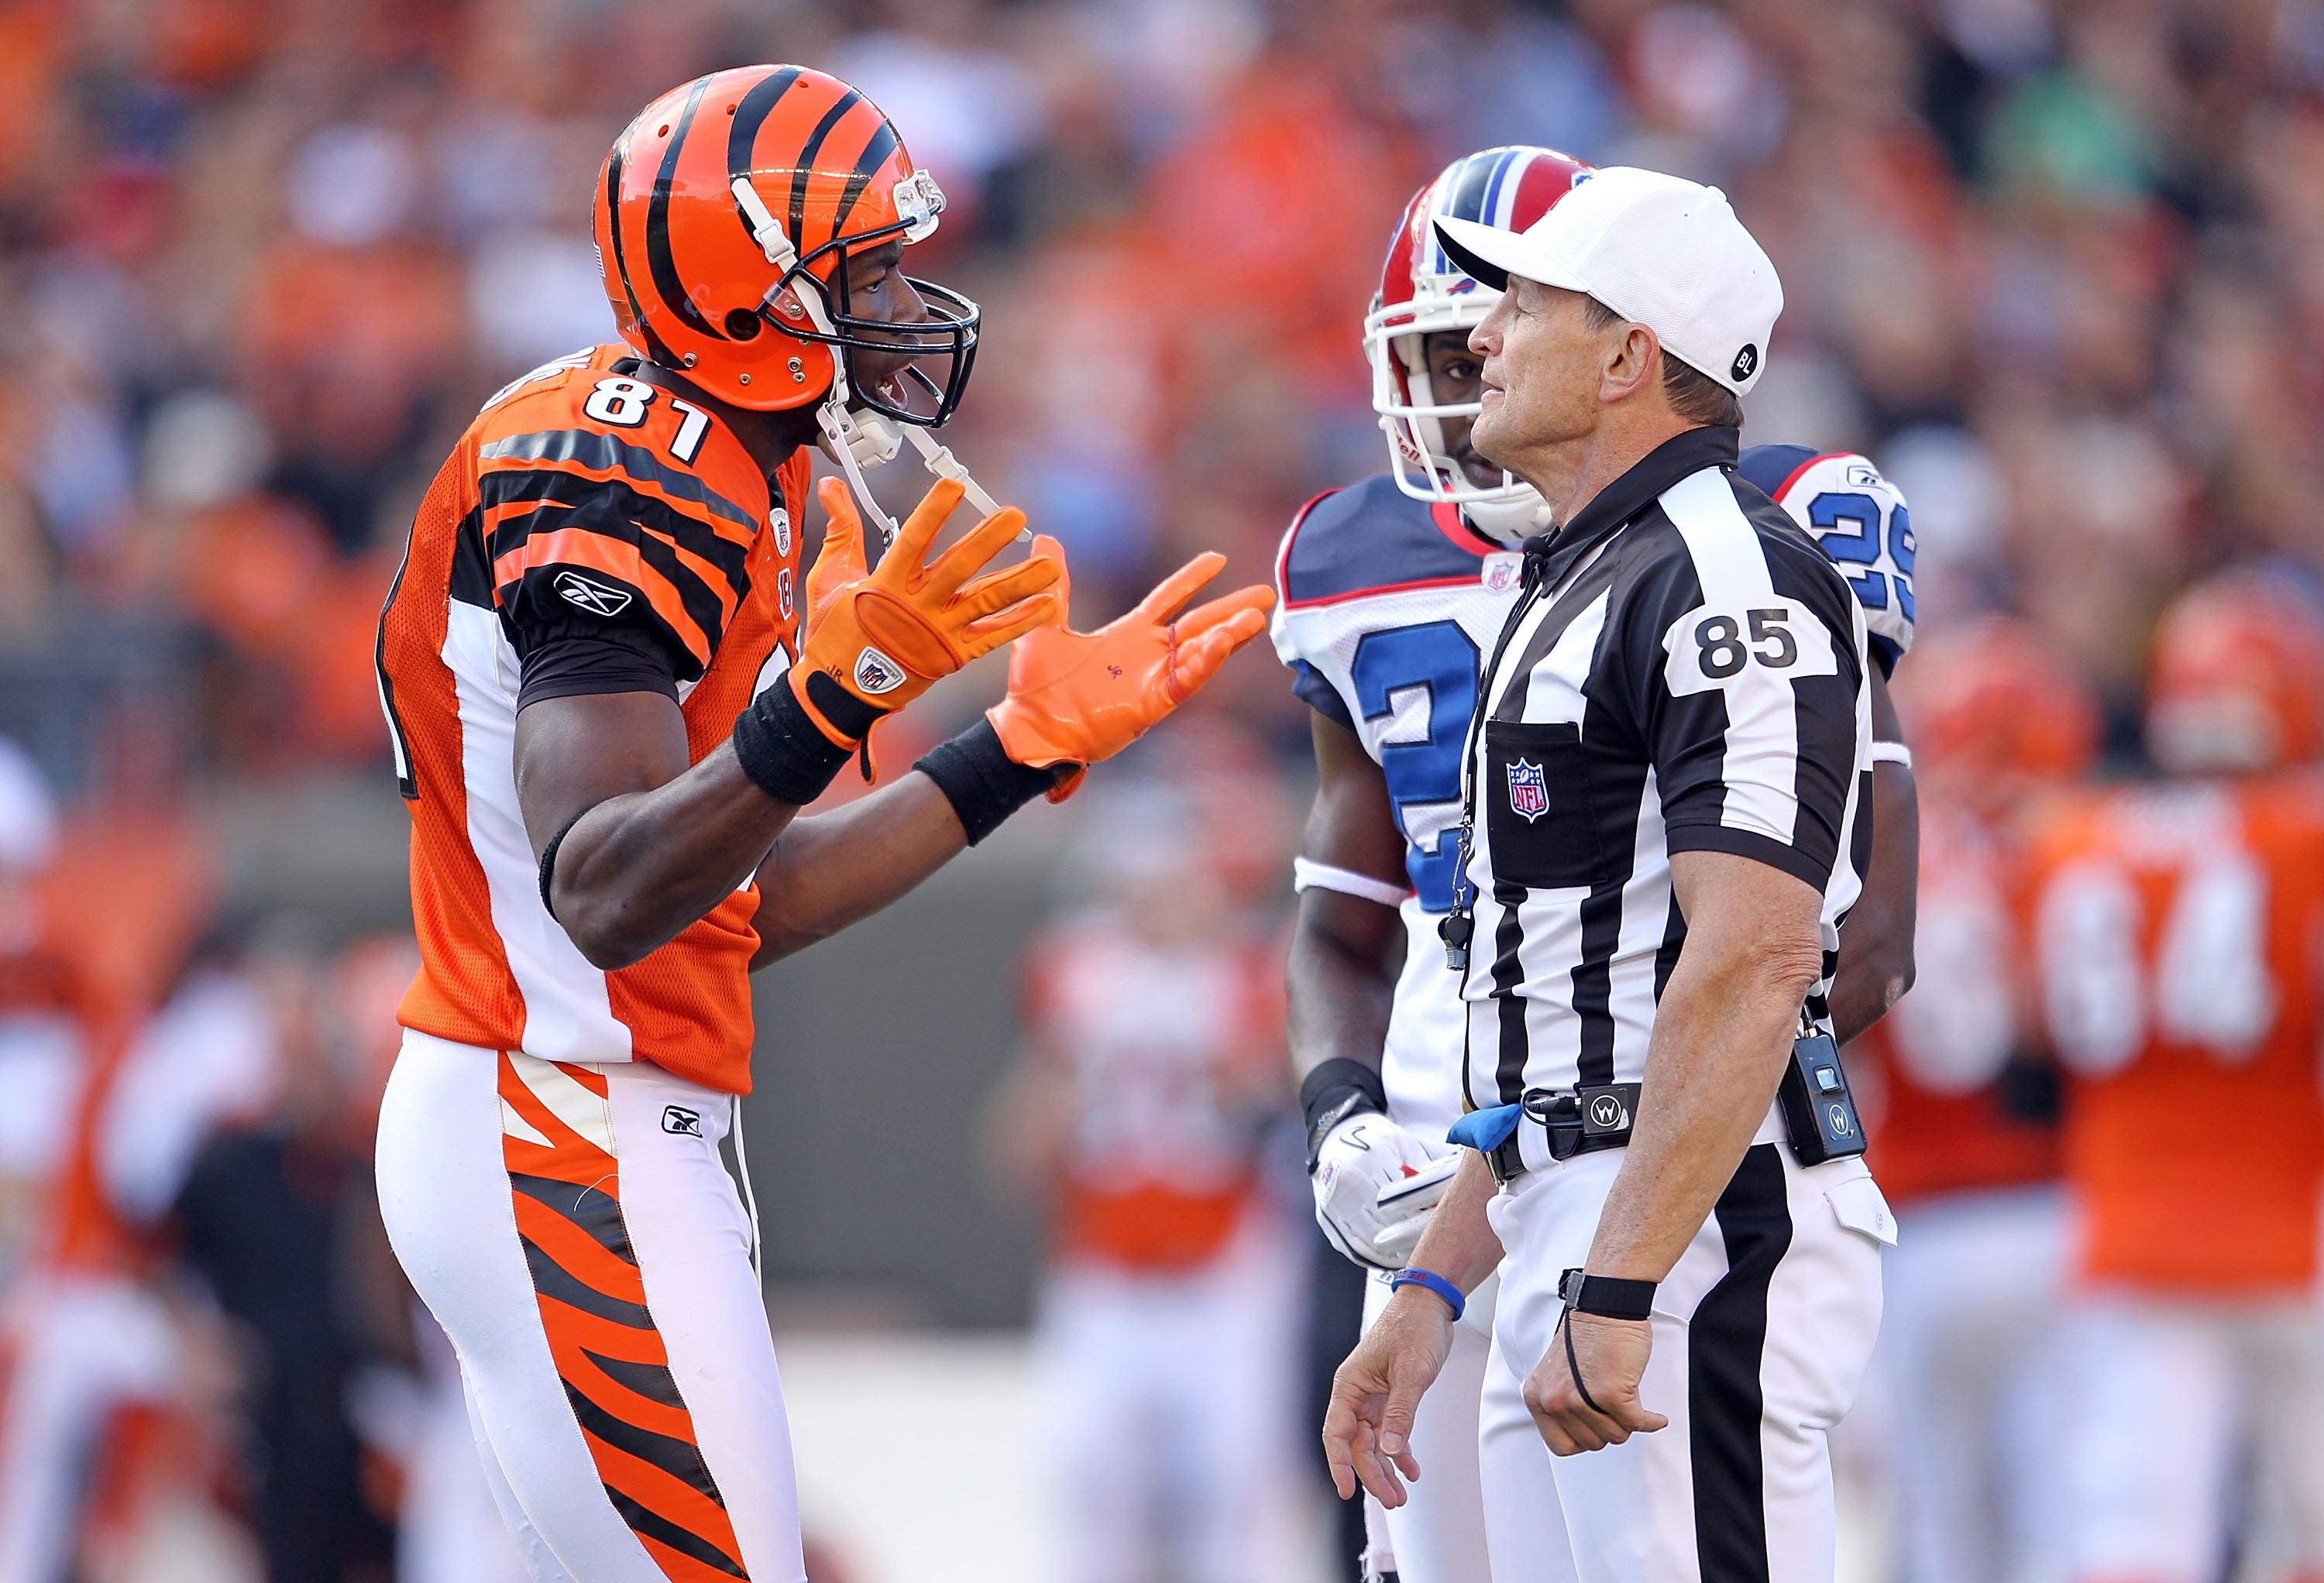 CINCINNATI - NOVEMBER 21:  Terrell Owens #81 of the Cincinnati Bengals pleads his case with game offical Ed Hochuli during the Bengals 49-31 loss to the Buffalo Bills at Paul Brown Stadium on November 21, 2010 in Cincinnati, Ohio.  (Photo by Andy Lyons/Ge